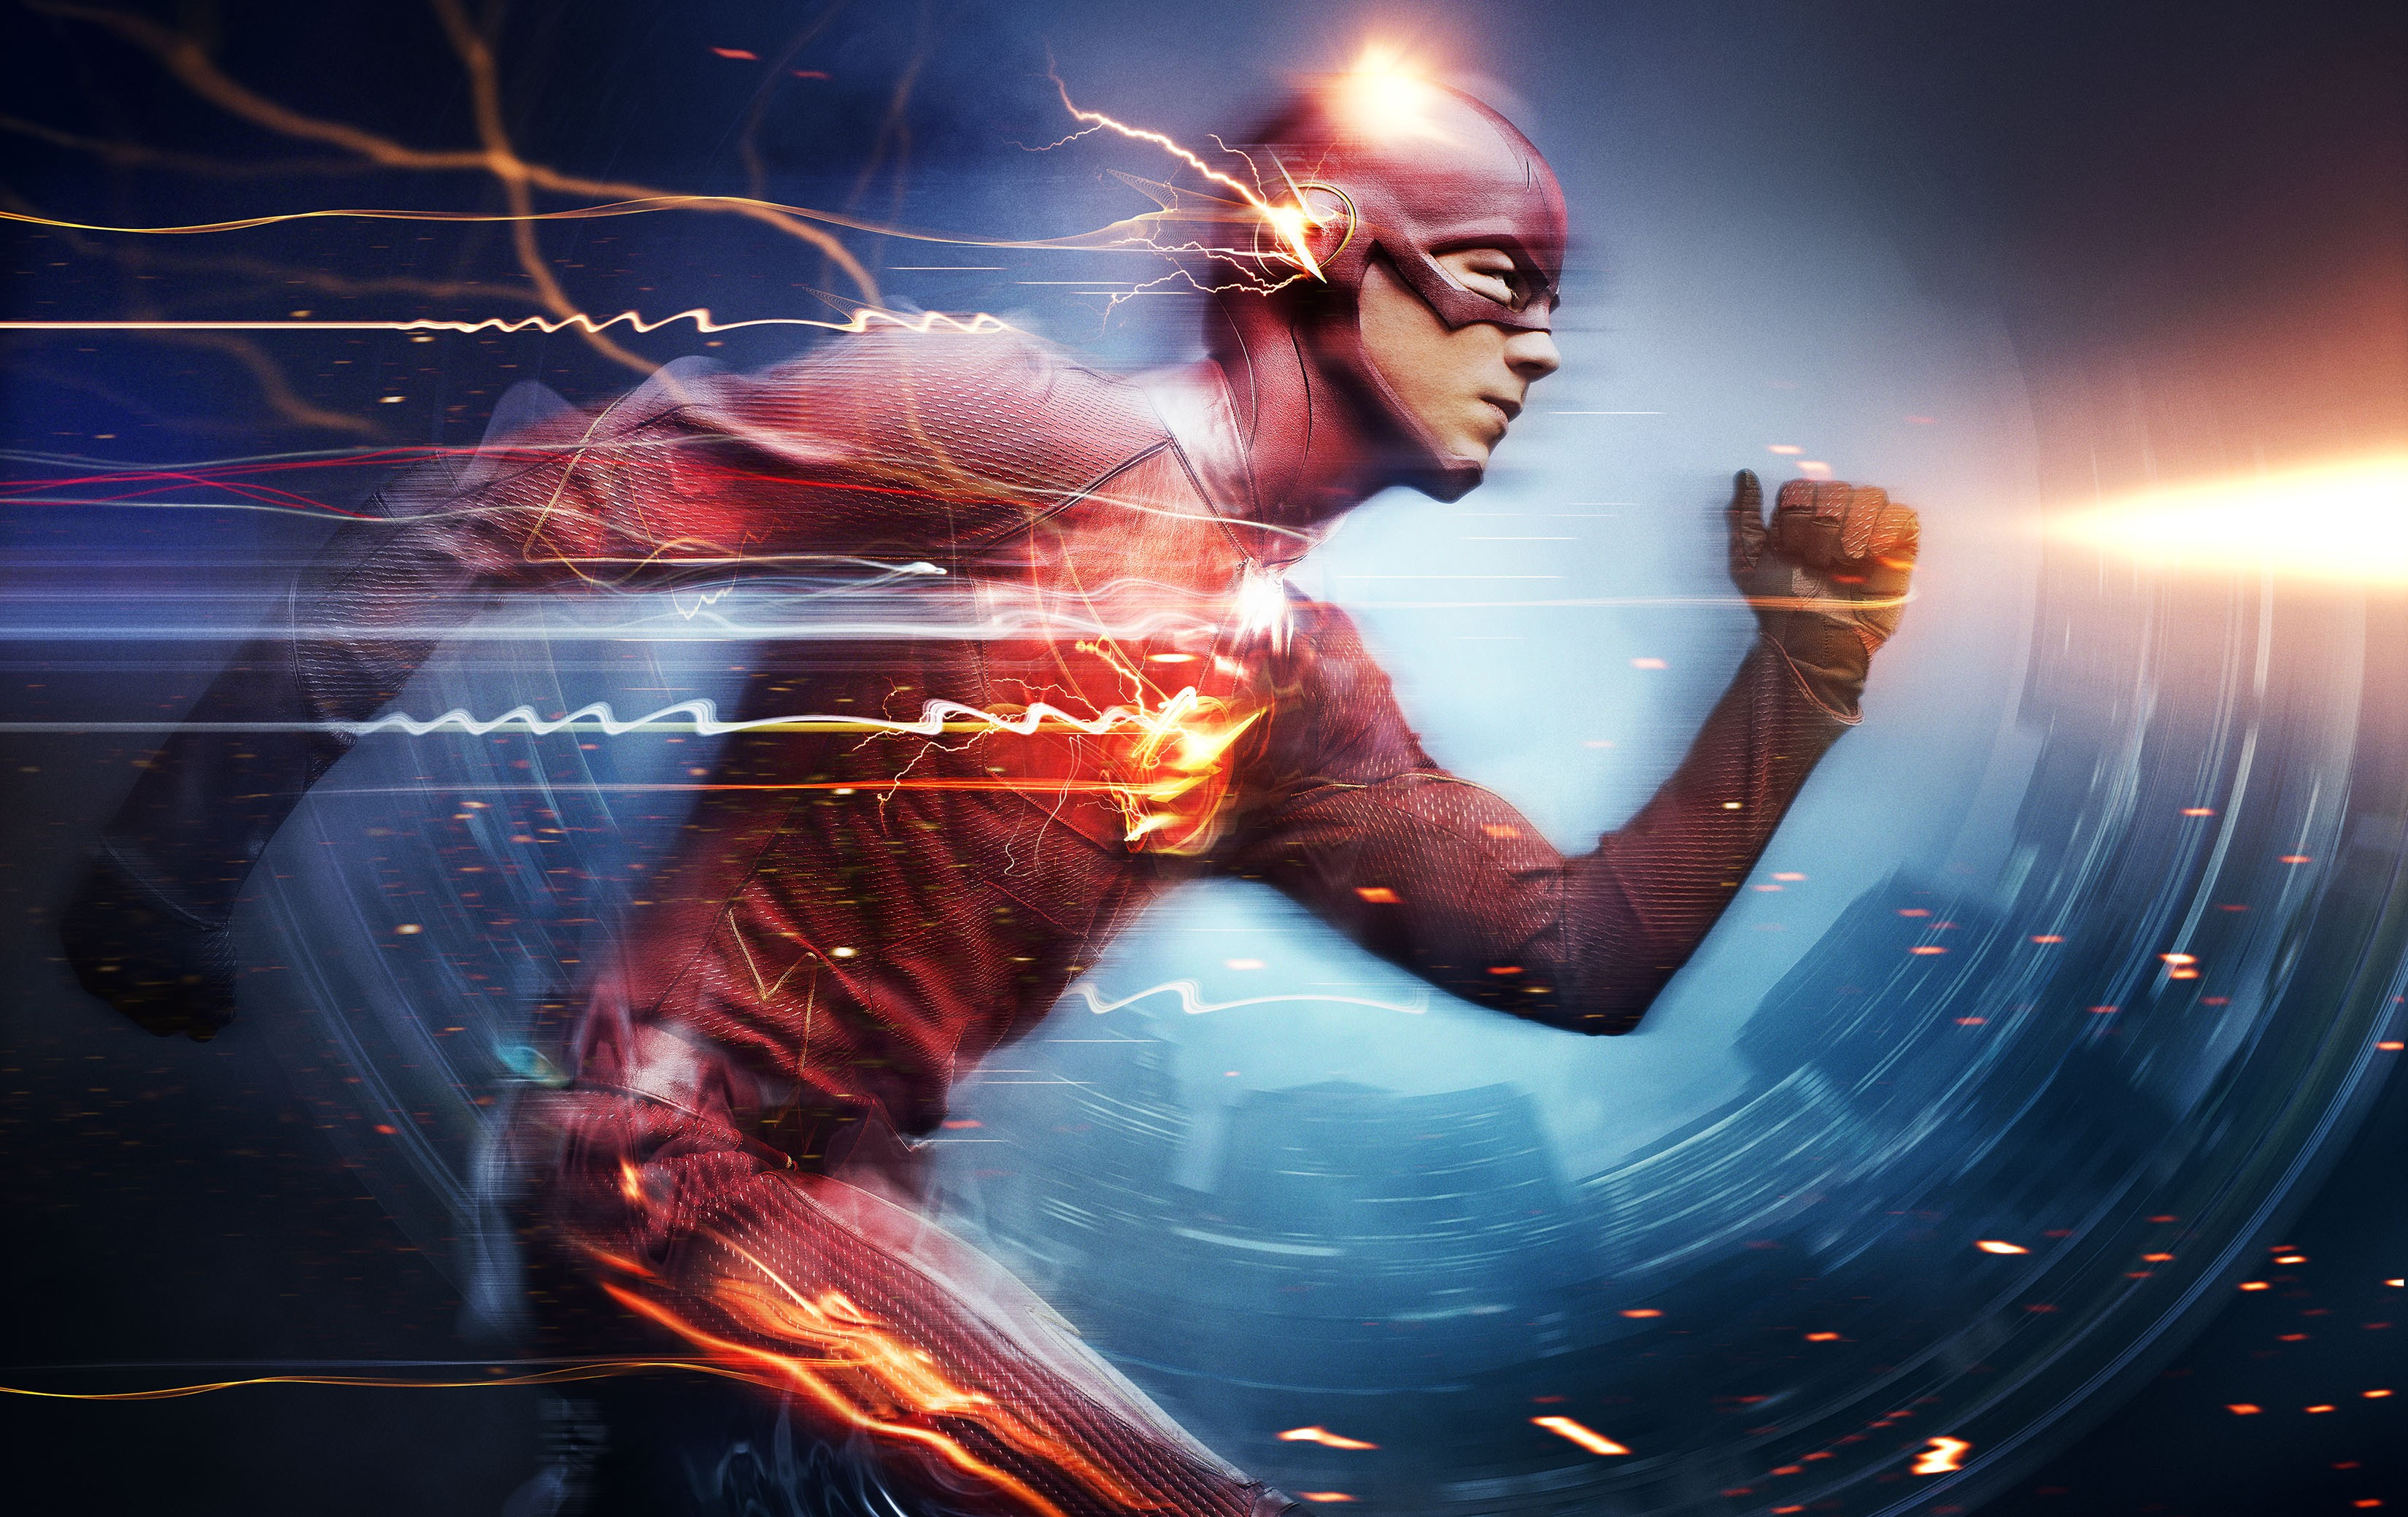 wallpaper the flash, best tv series of 2015, grant gustin, movies #5675